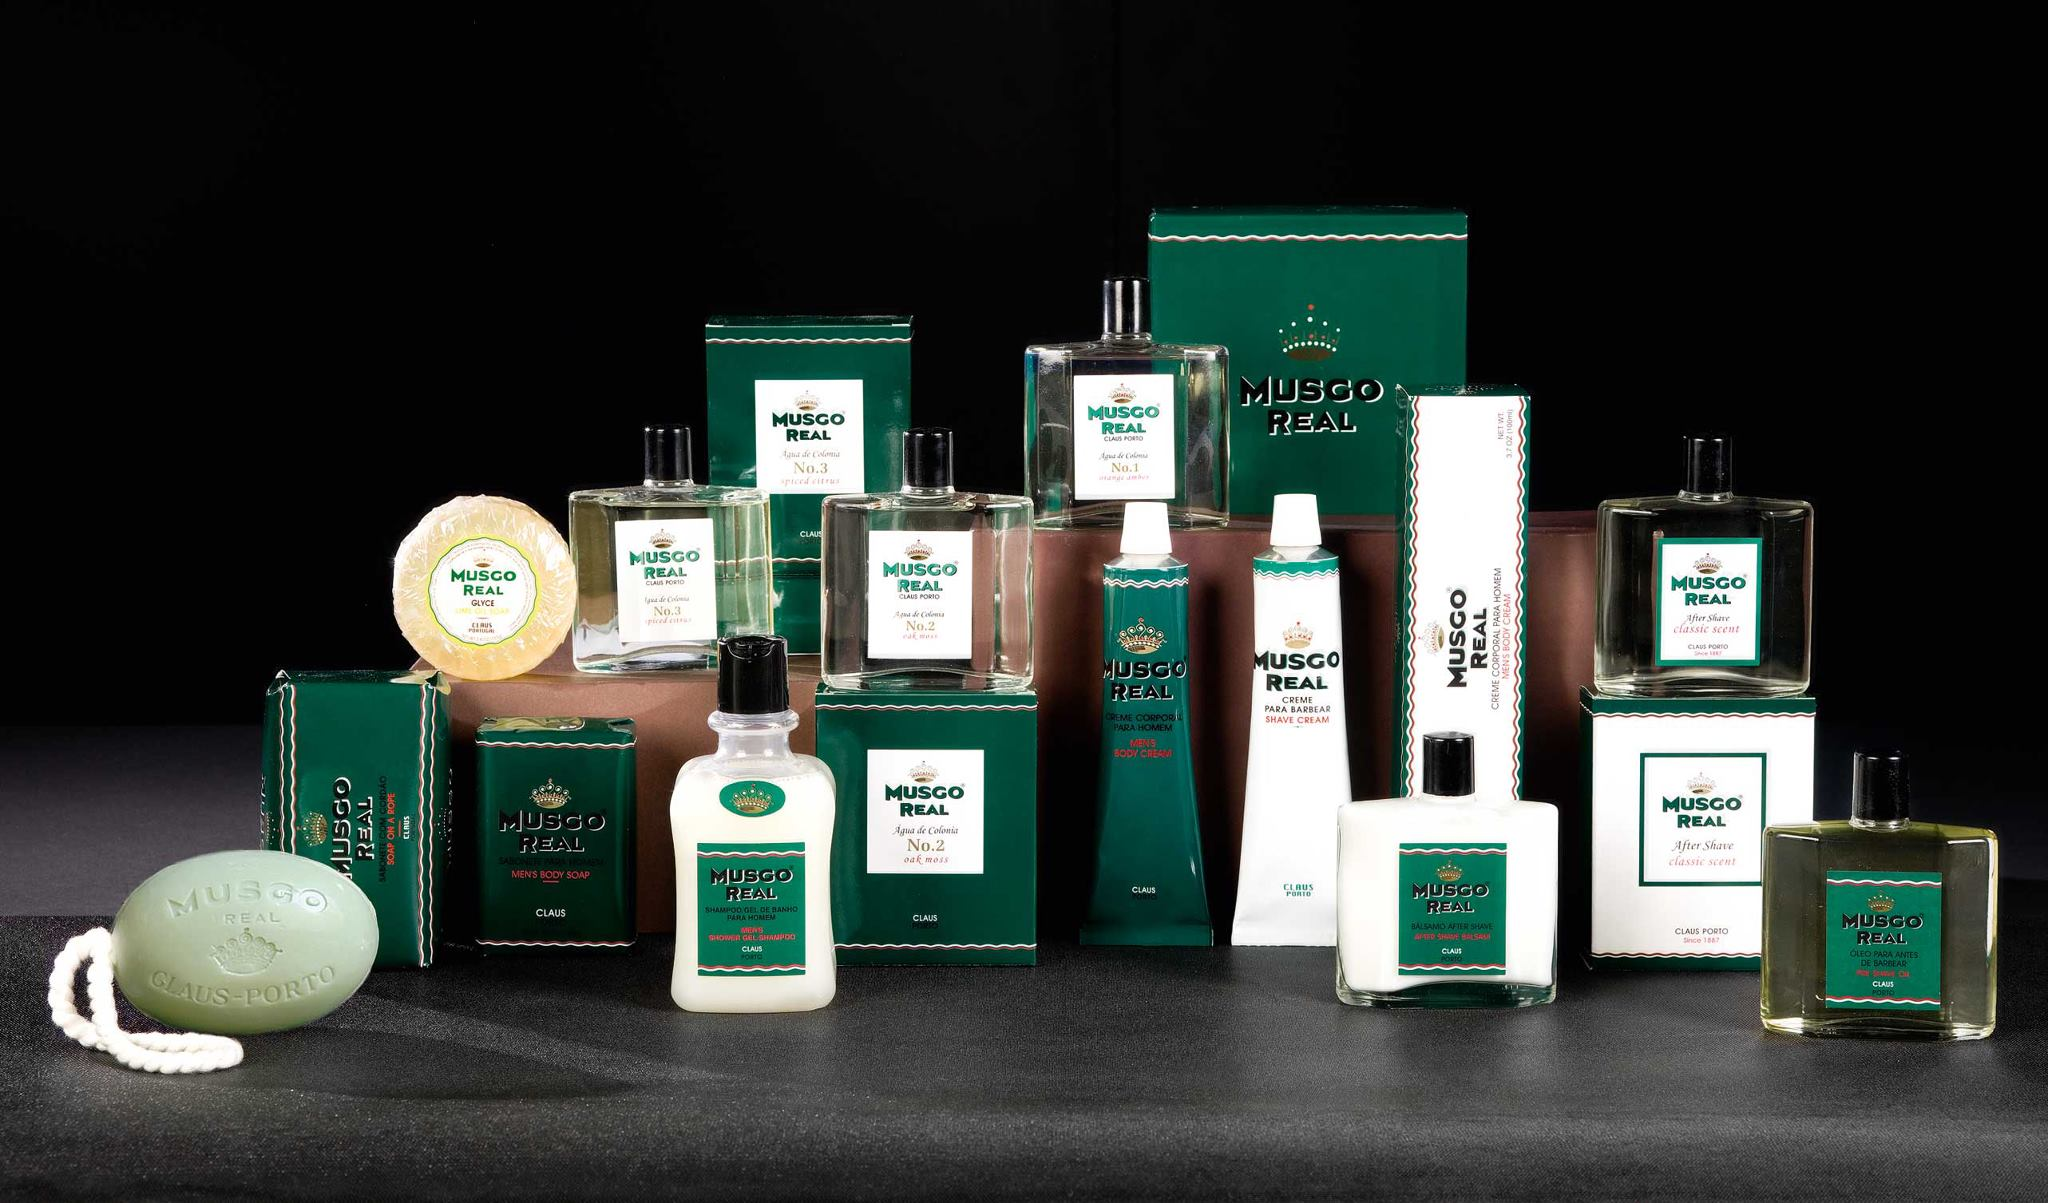 Musgo Real Men's Shaving and Grooming Products: From Portugal to Your Door